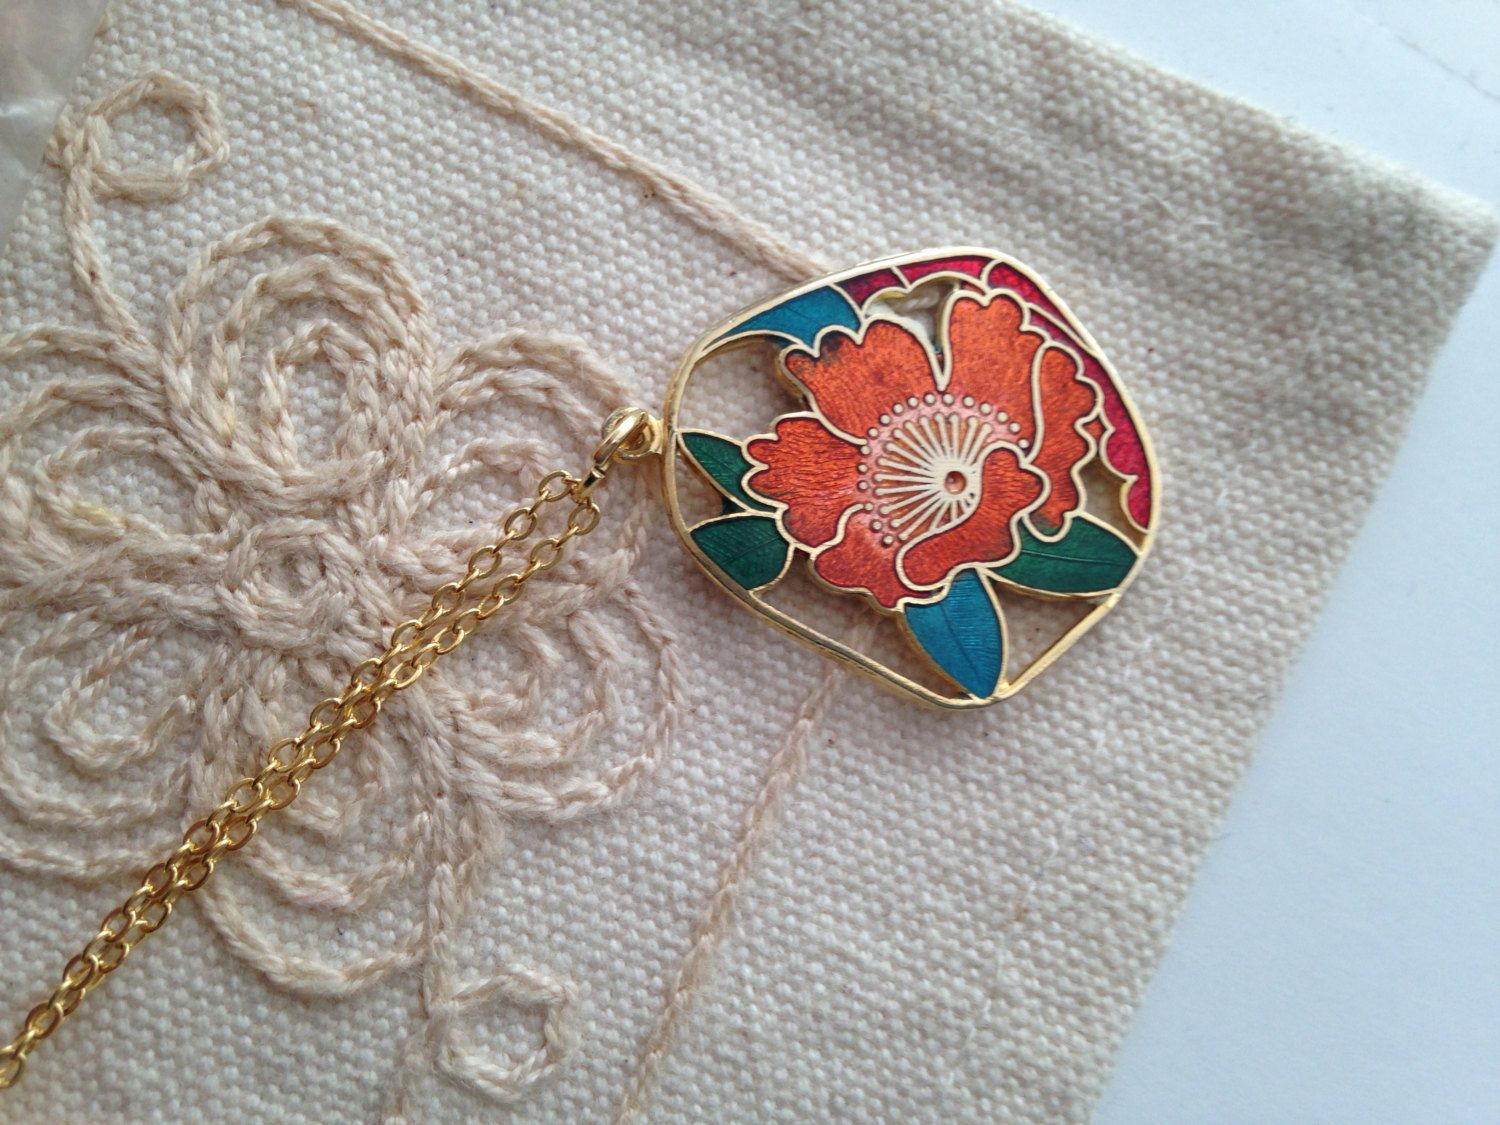 Cloisonne pendant necklace, vintage cloisonne pendant necklace, cloisonné necklace, cloisonné pendants, vintage cloisonné jewelry, flower by DuckCedar on Etsy